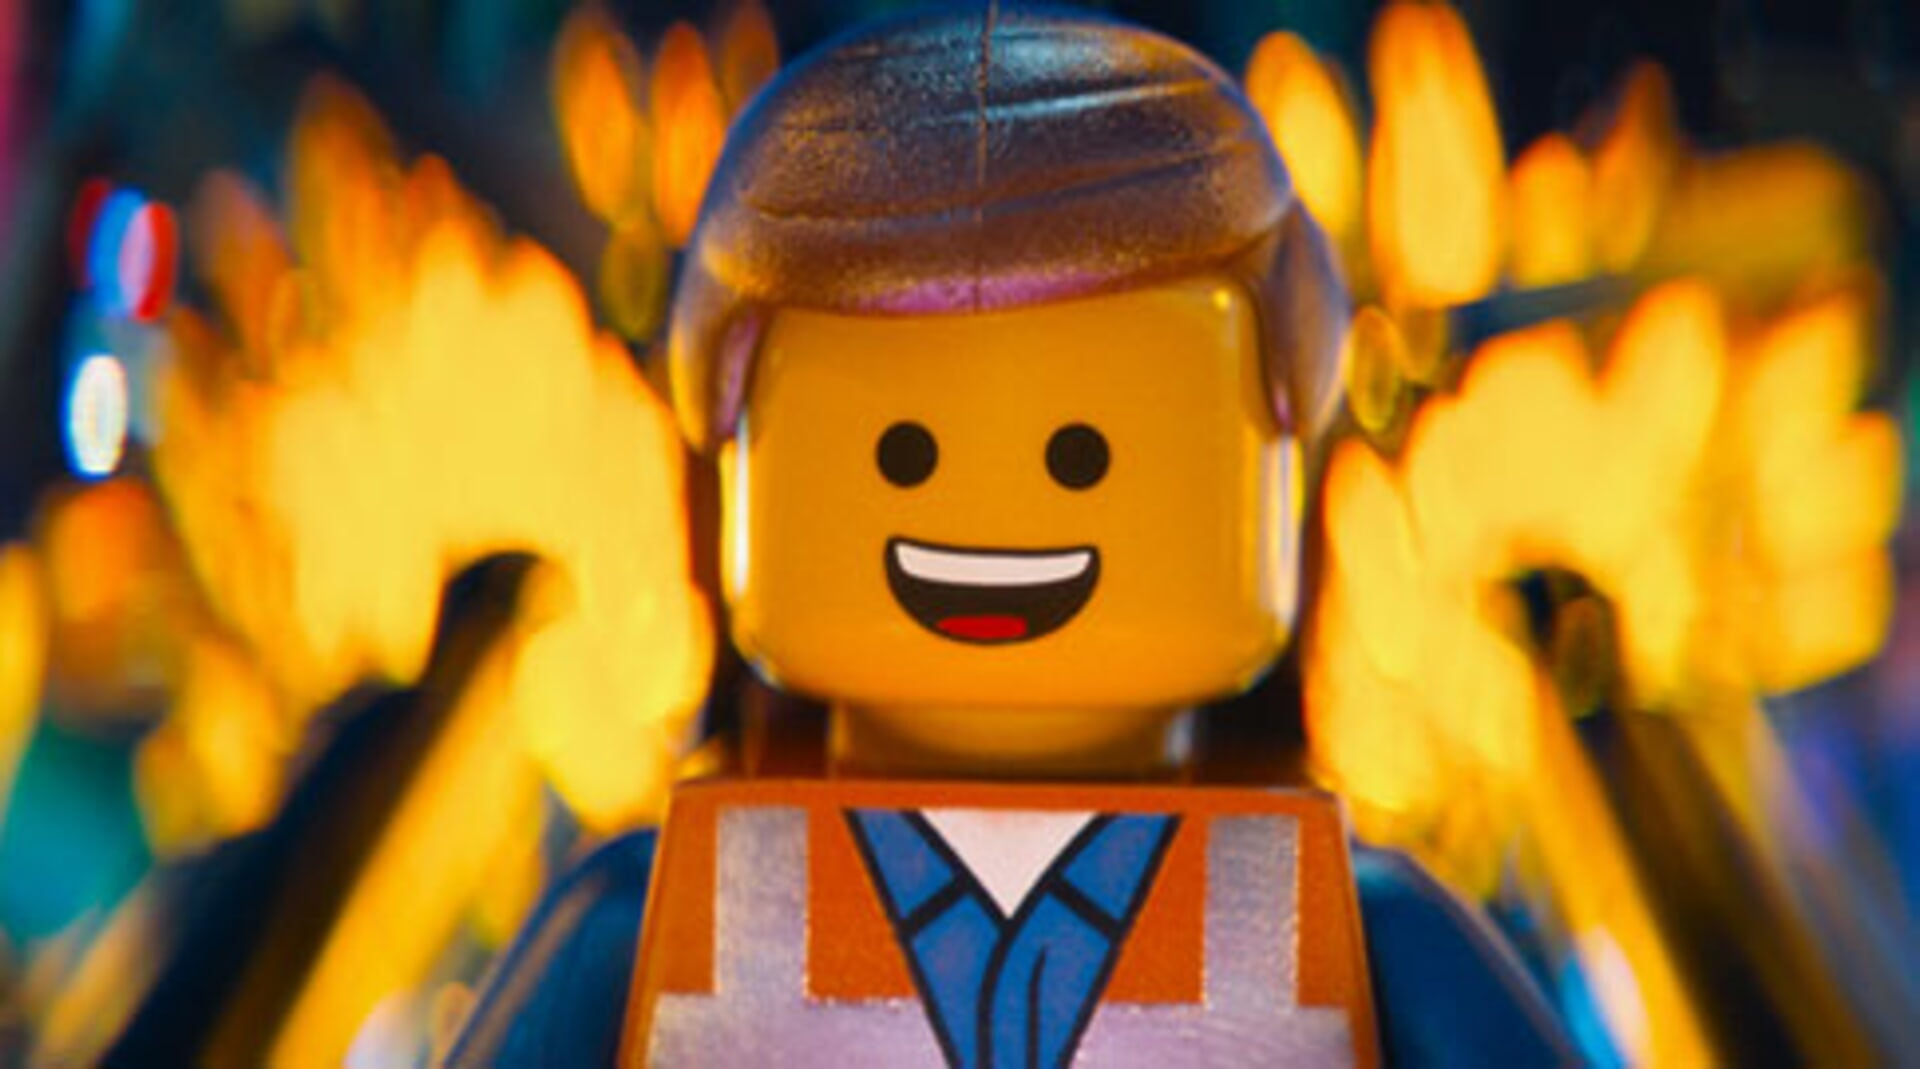 The Lego Movie - Image 24